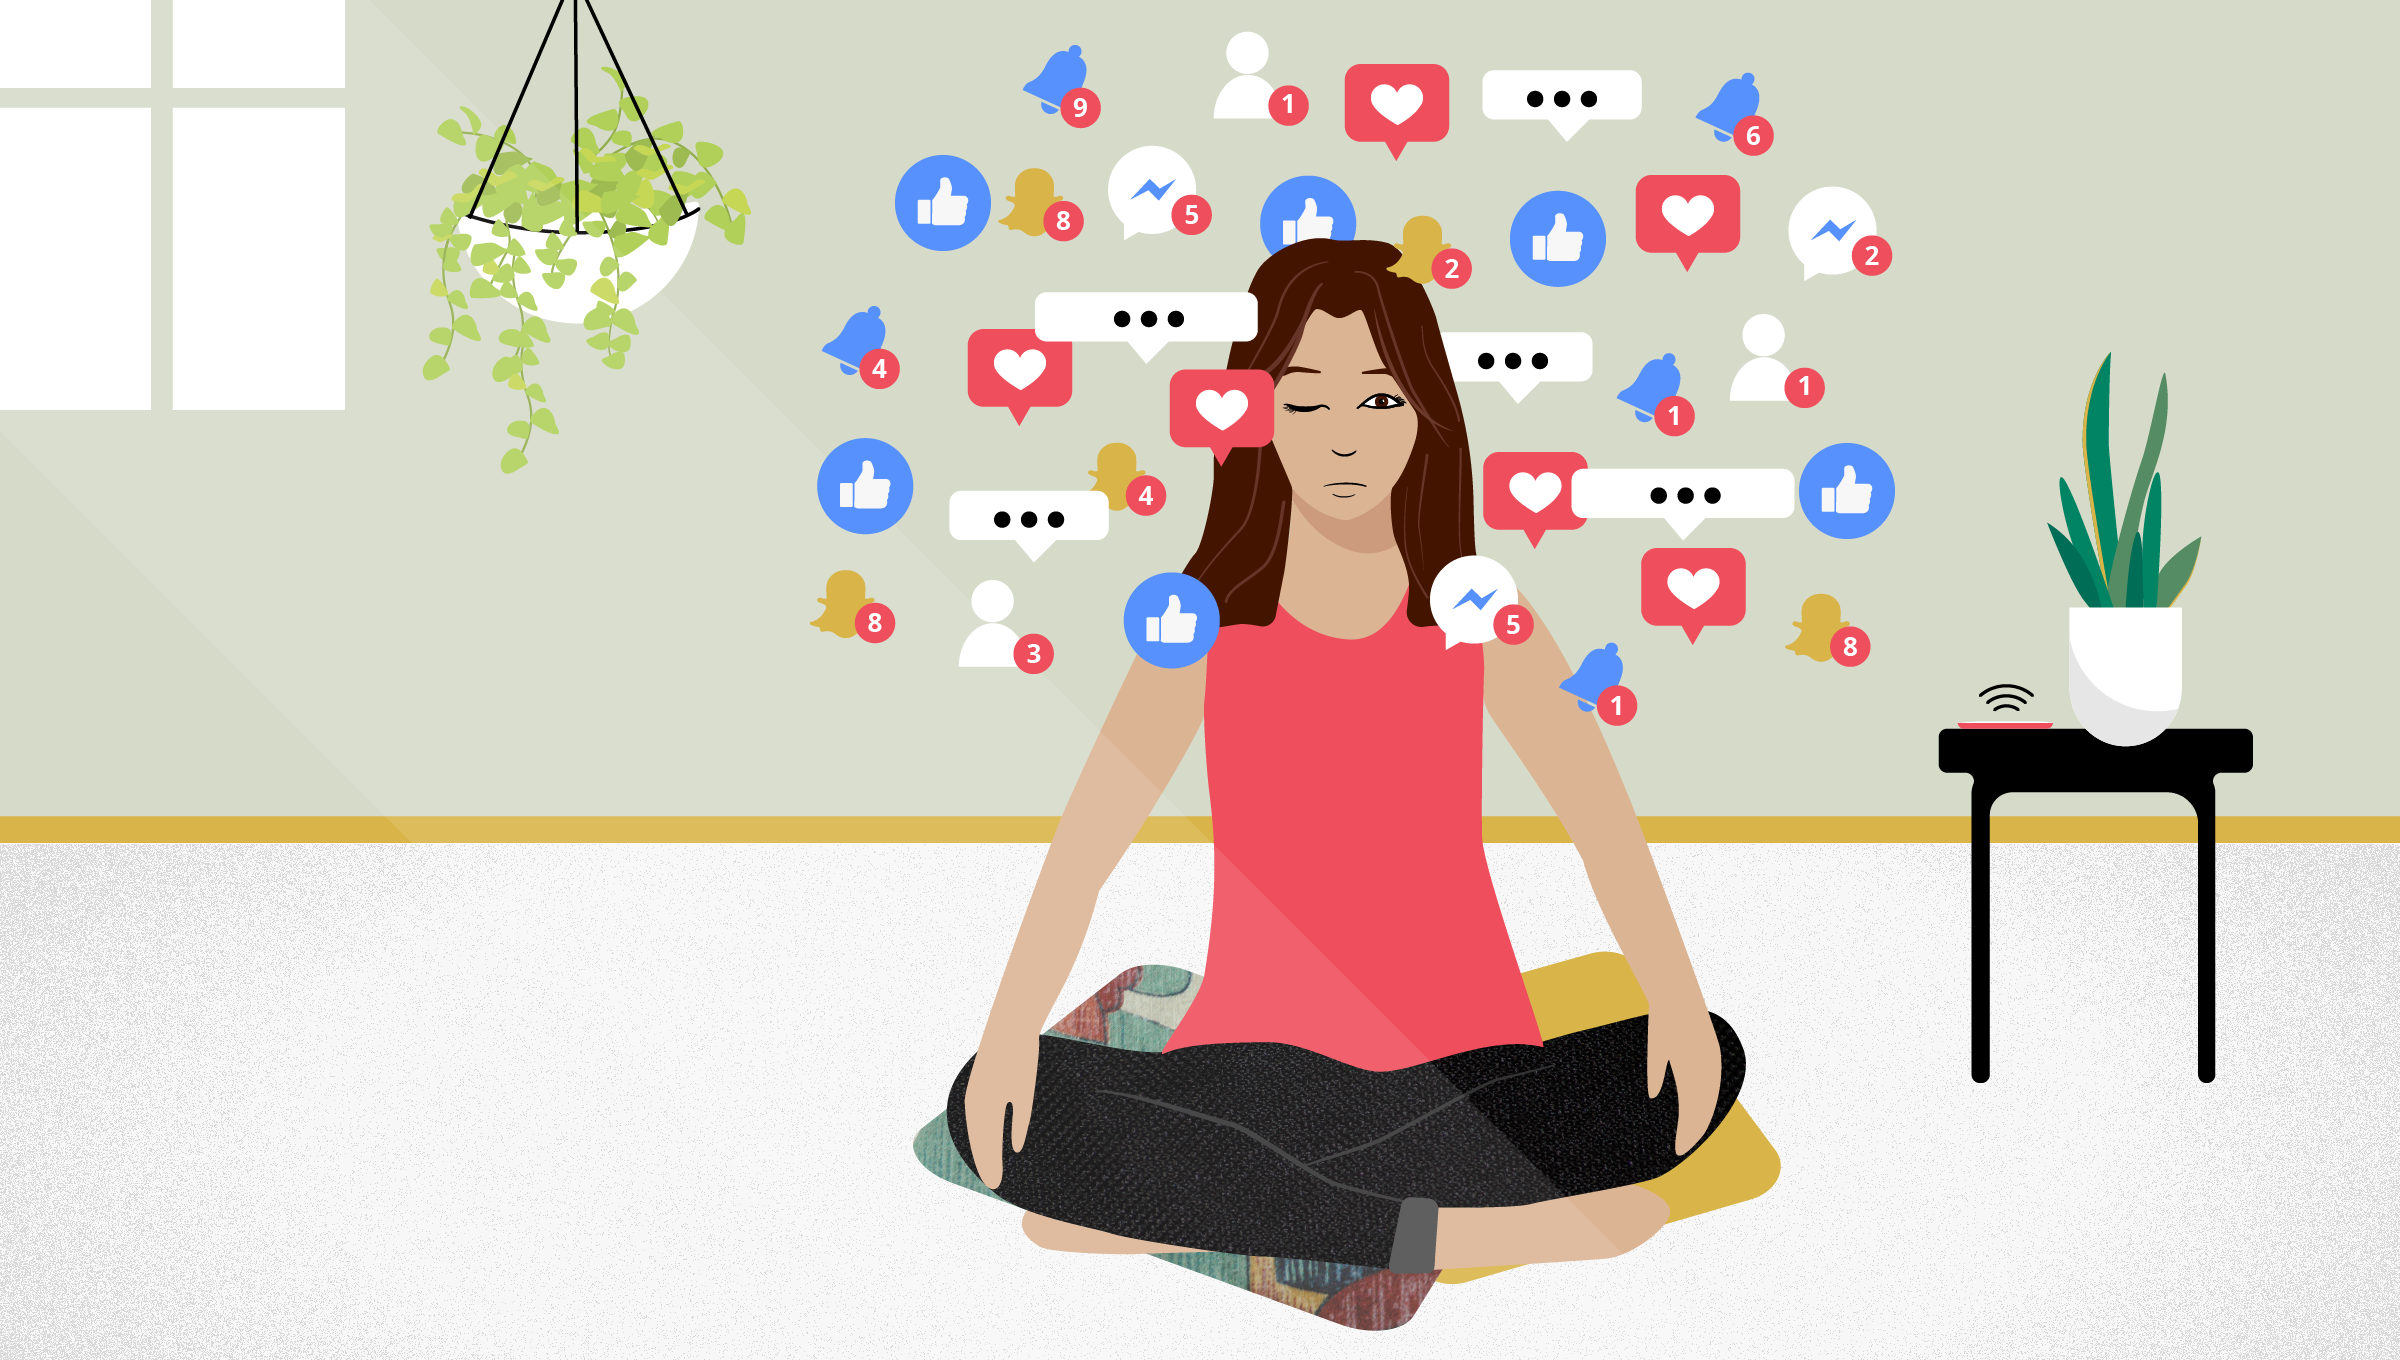 an illustration of a woman trying to meditate while social media notifications are popping up around her head